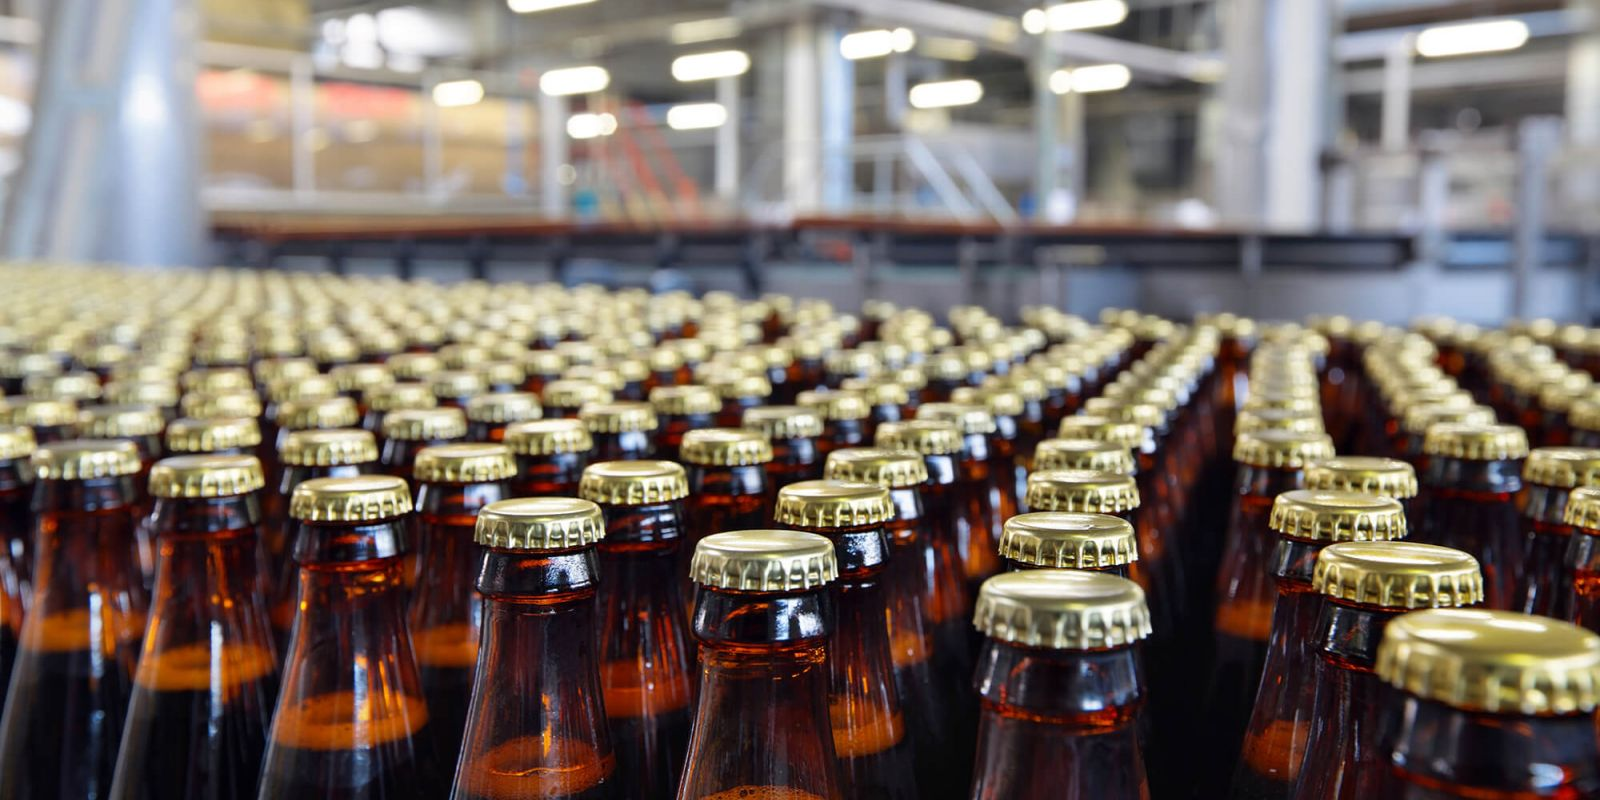 Factory processing and bottling